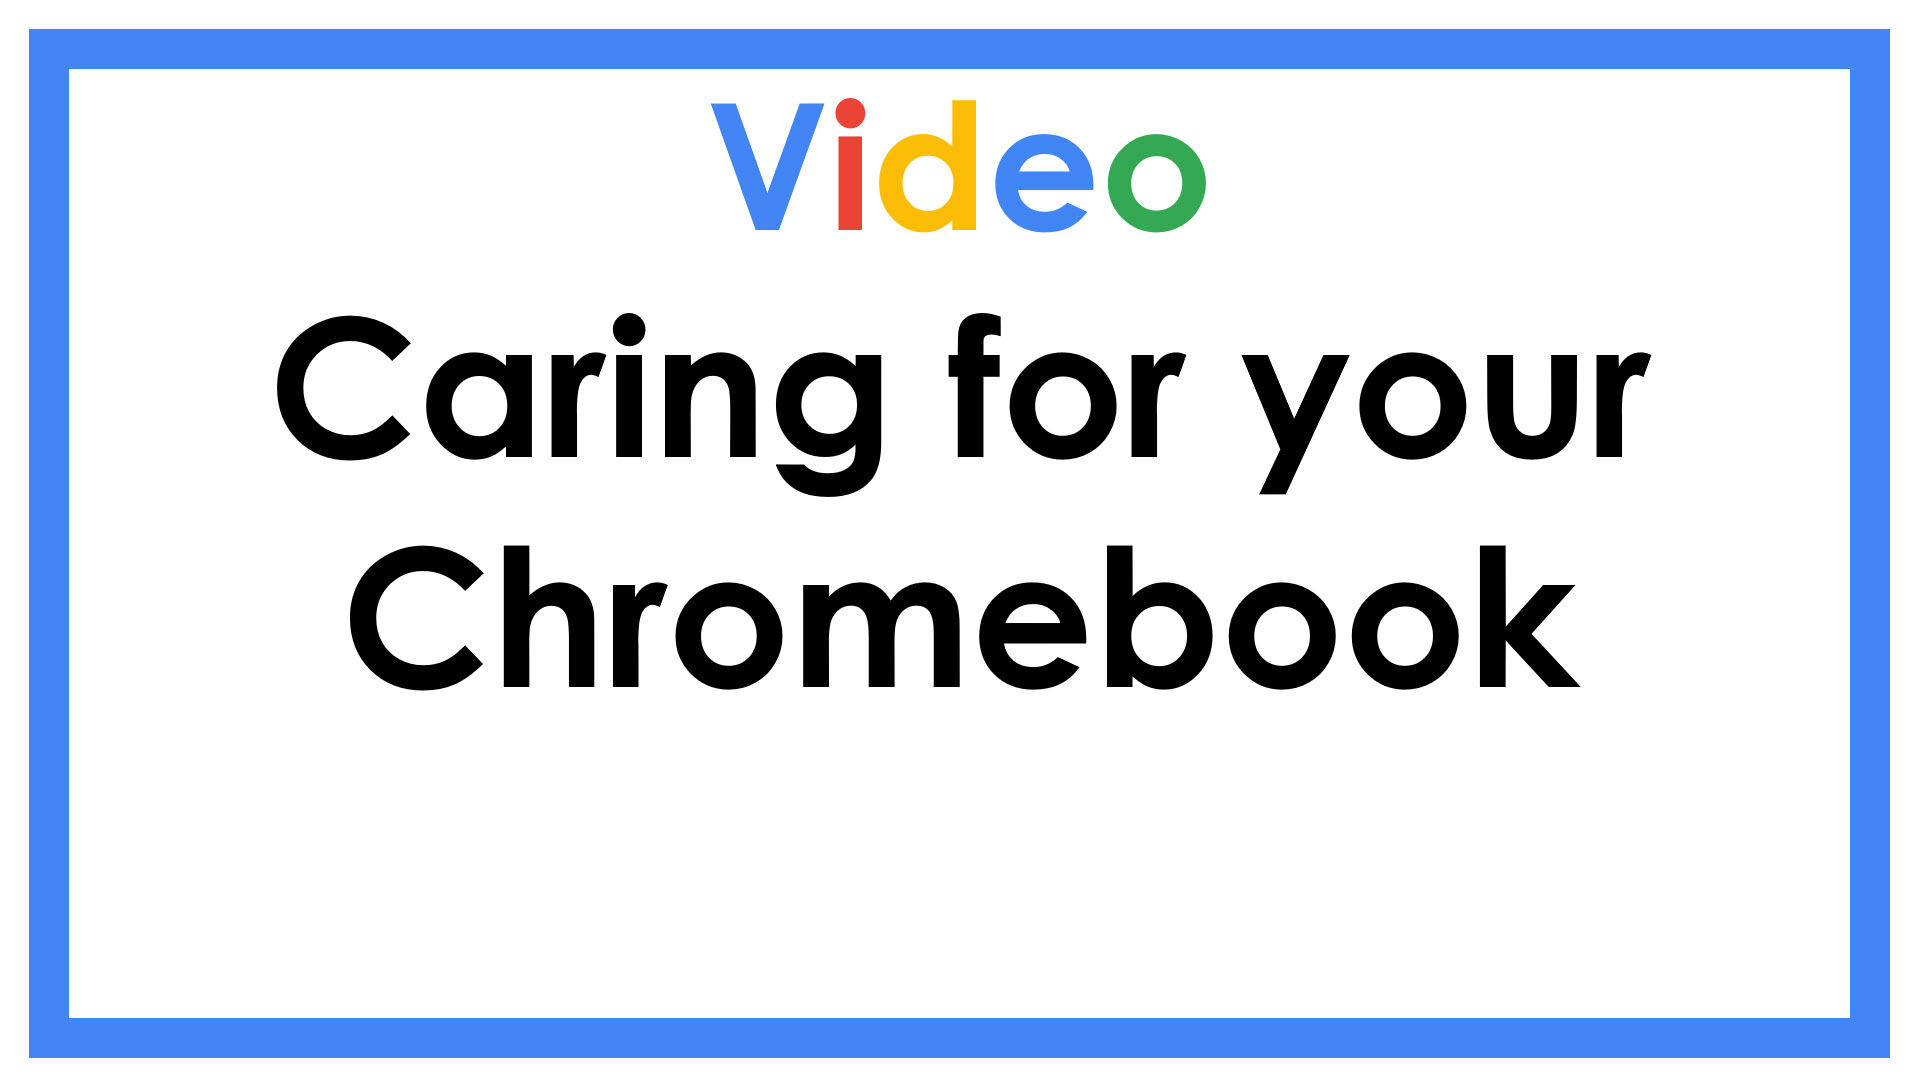 Video Caring for your Chromebook